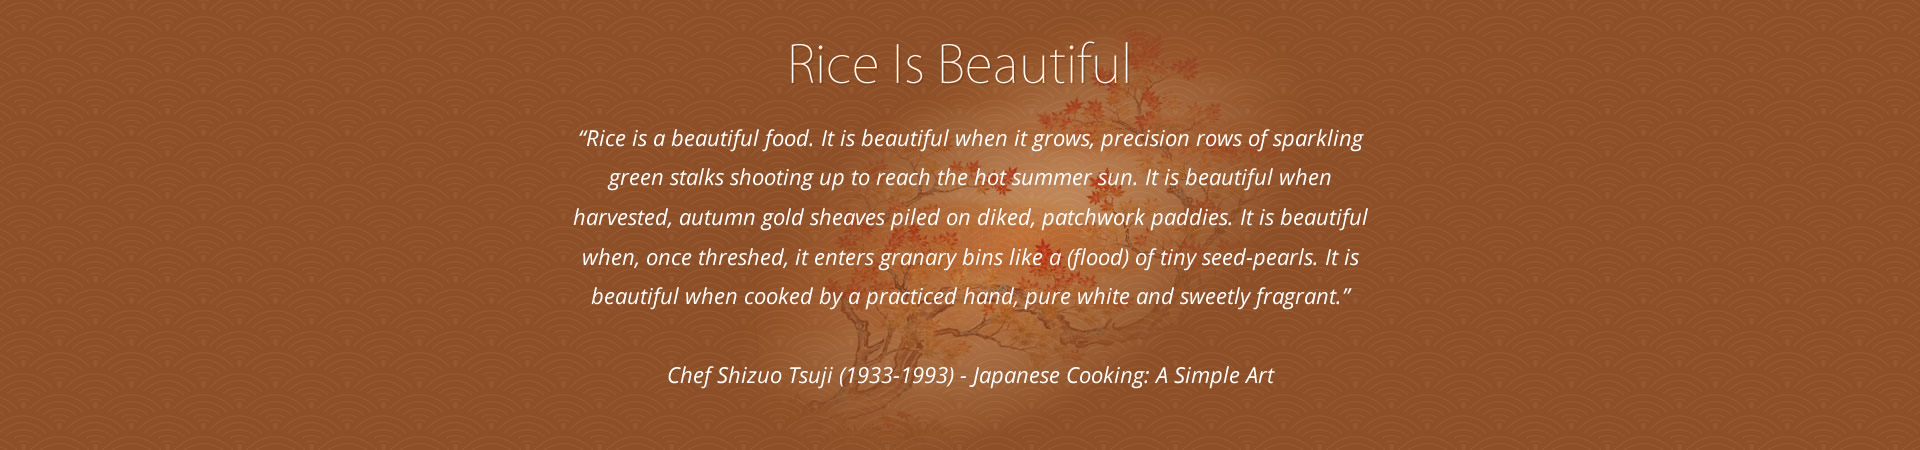 Rice is Beautiful